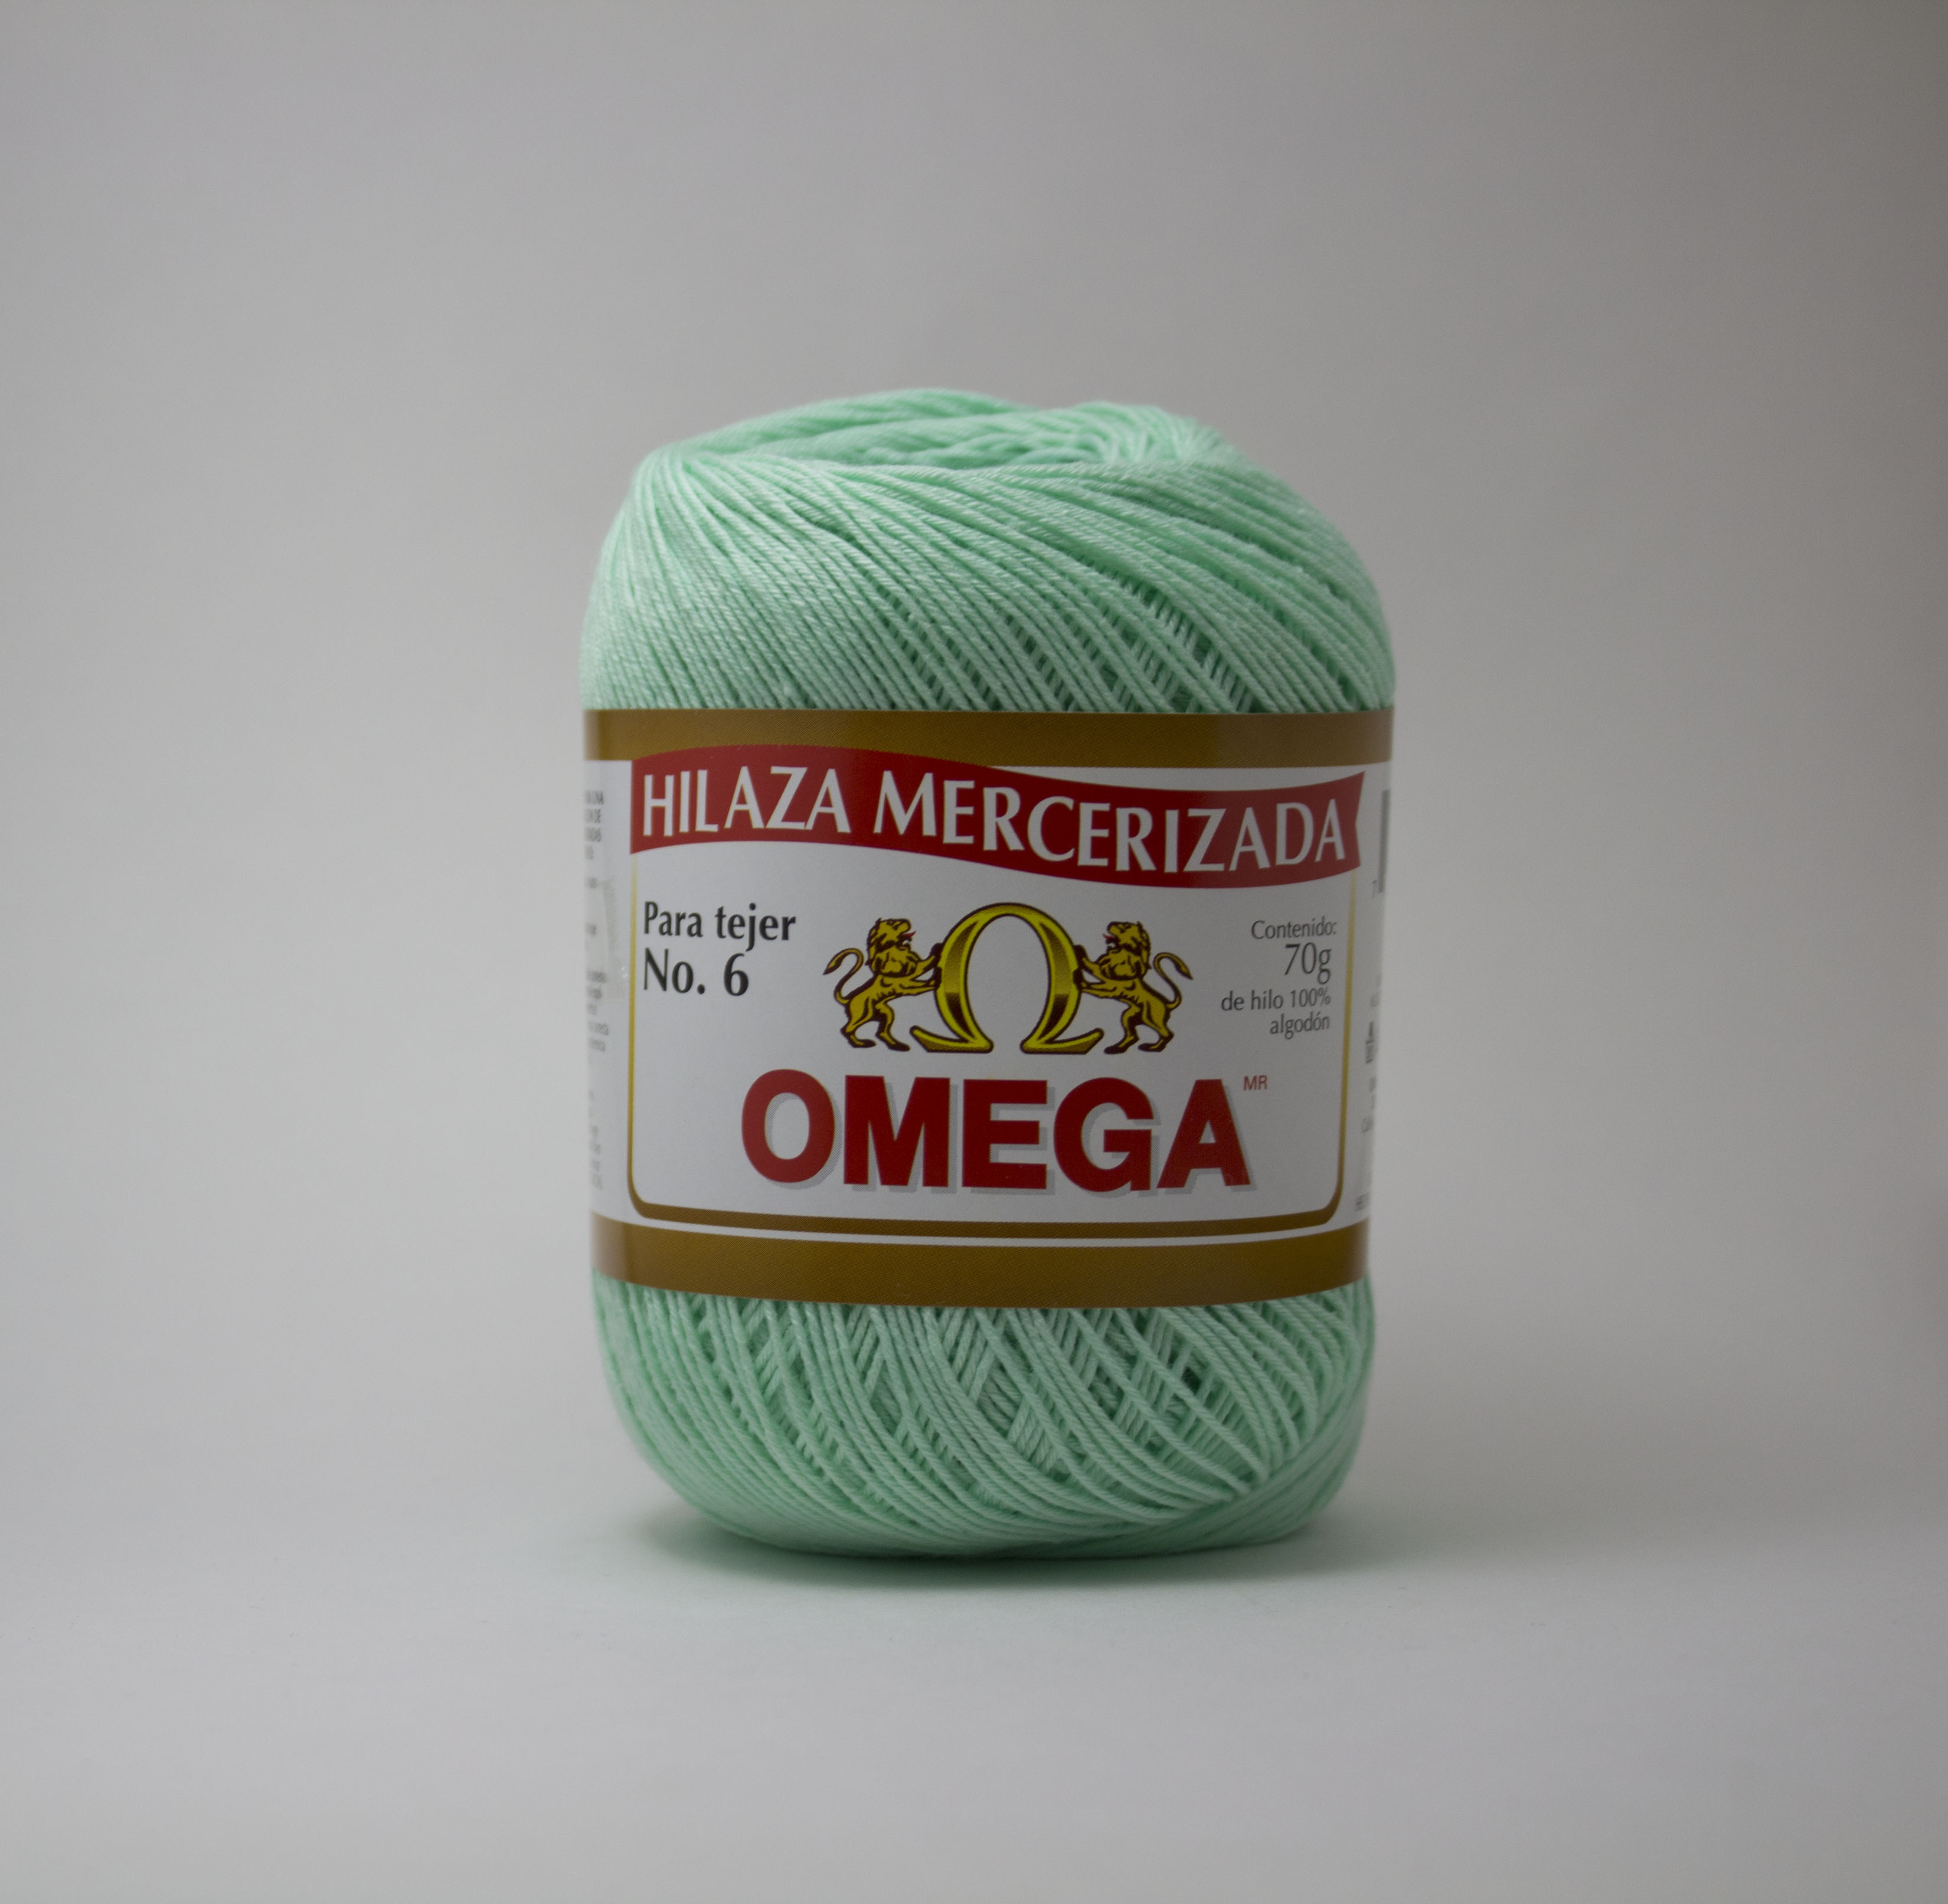 Omega Yarn Best Of Hilaza Omega Yarns 6 – Milartmarroquin Of Awesome 49 Pictures Omega Yarn